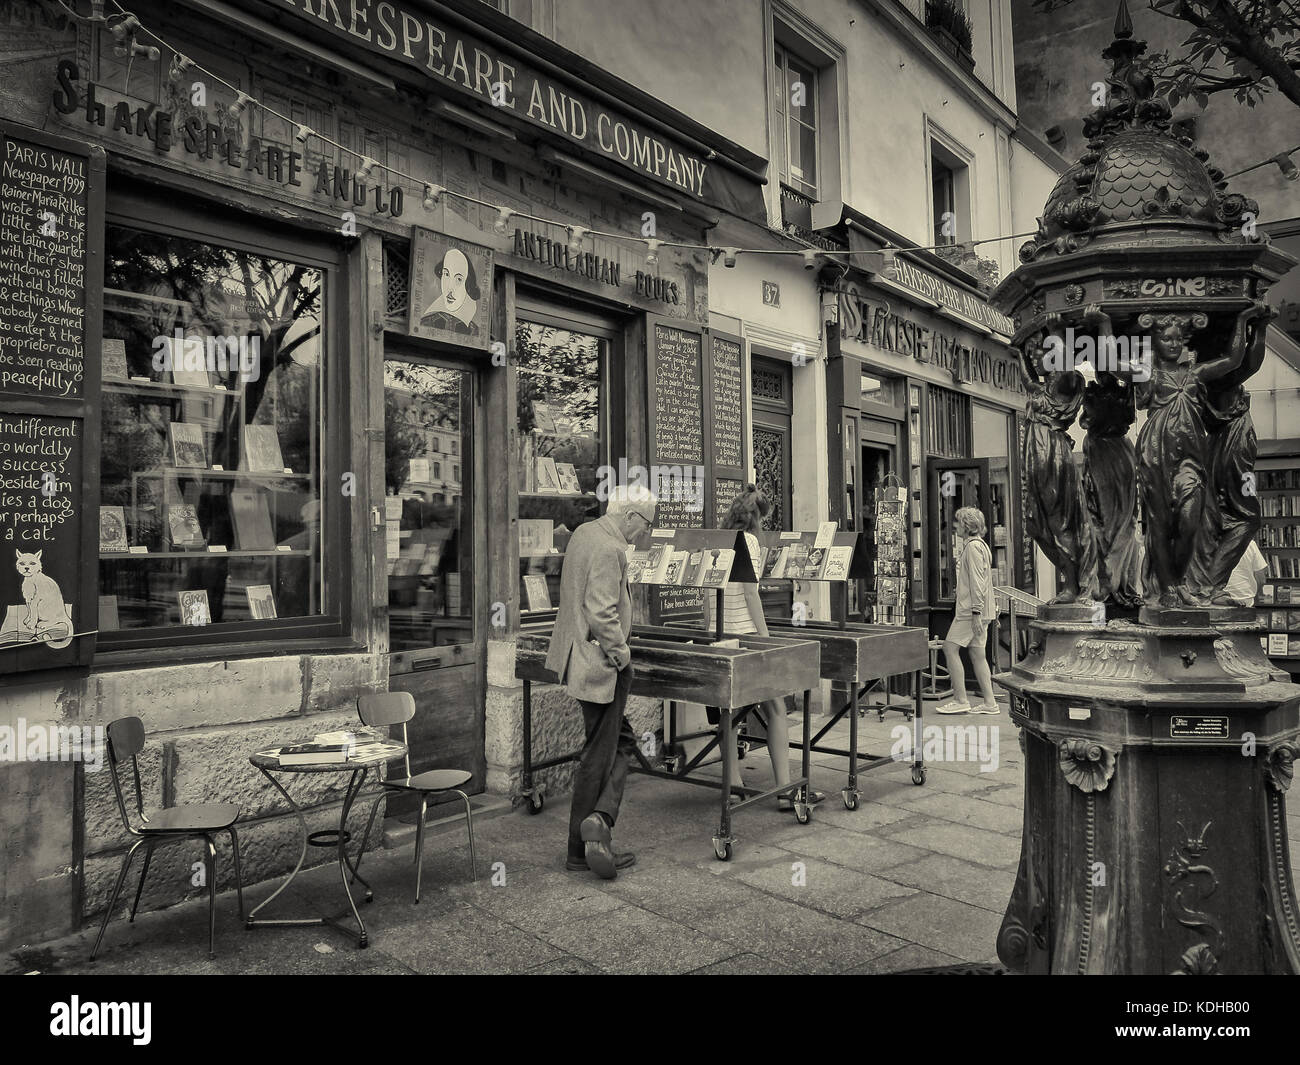 Shakespeare and Company is the name of two independent English-language bookstores that have existed on Paris's - Stock Image